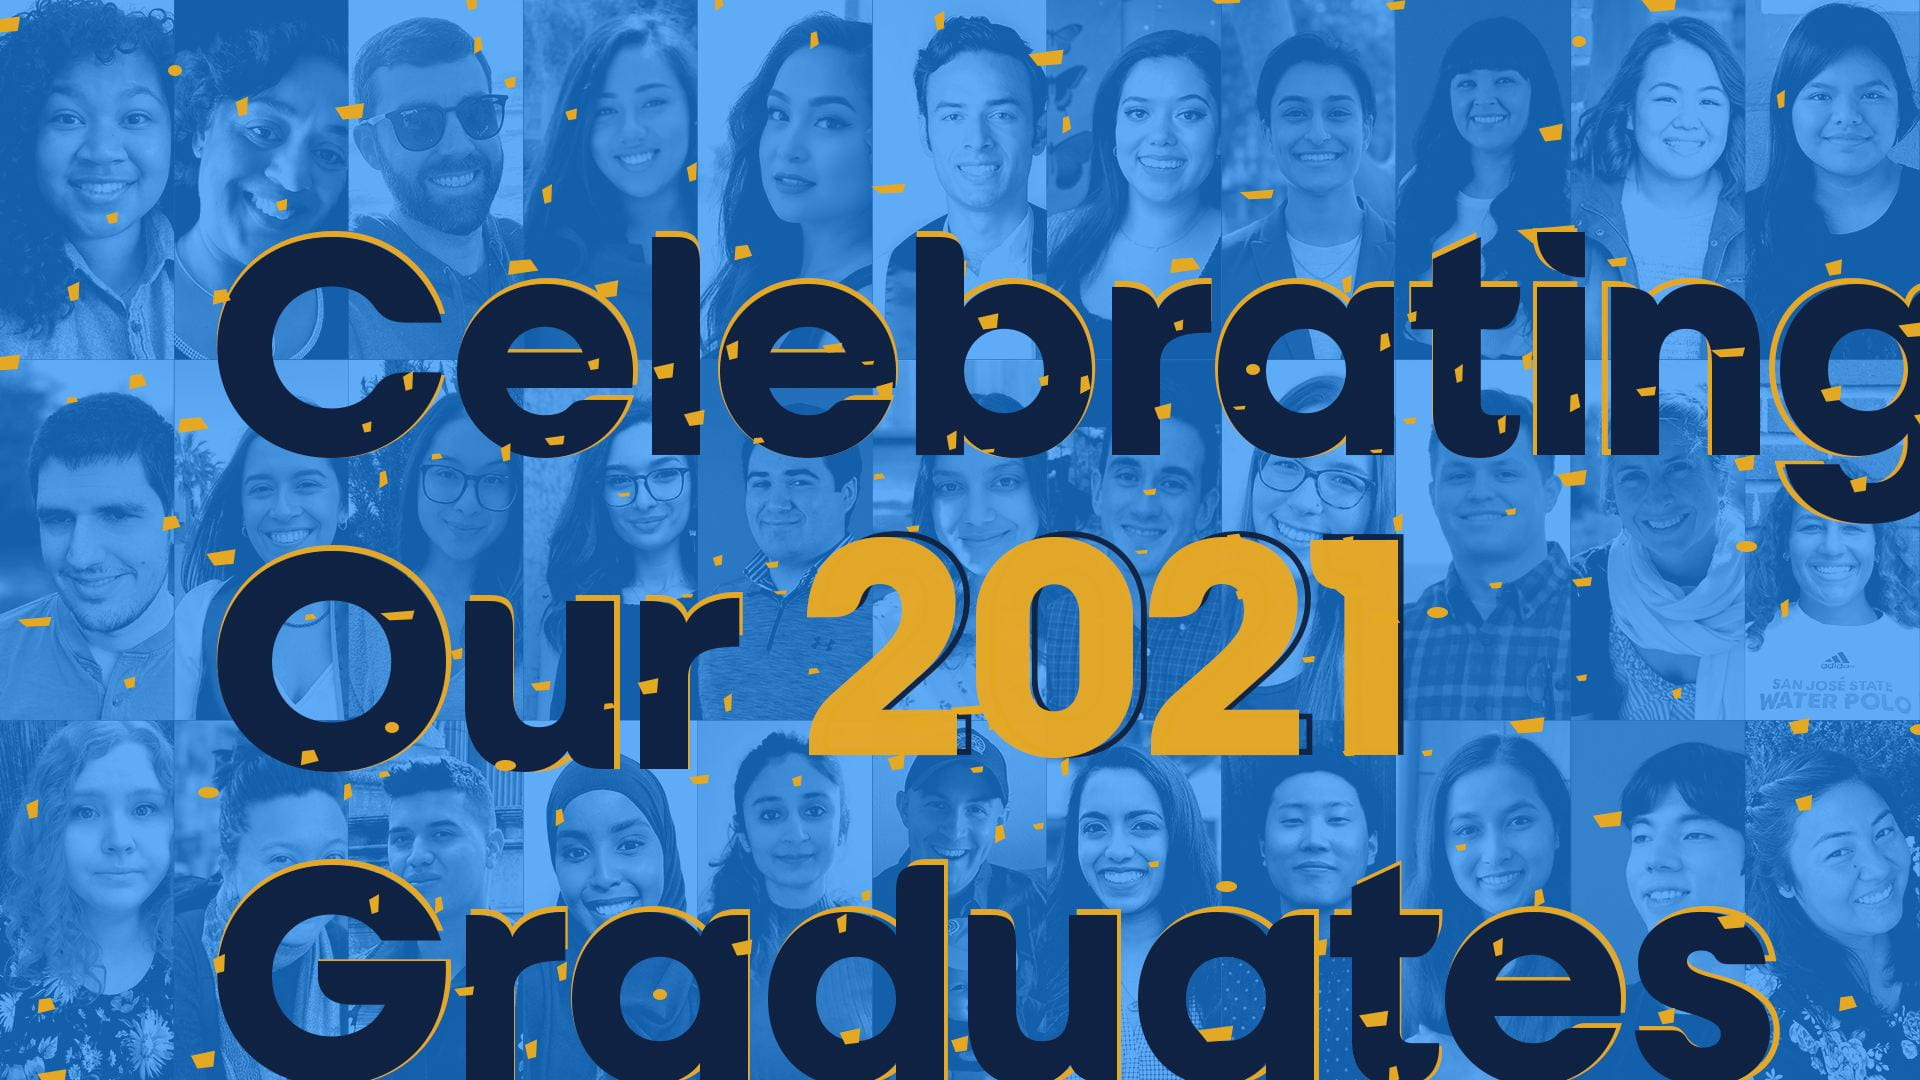 Celebrating our 2021 Graduates with portraits of grads in the background.